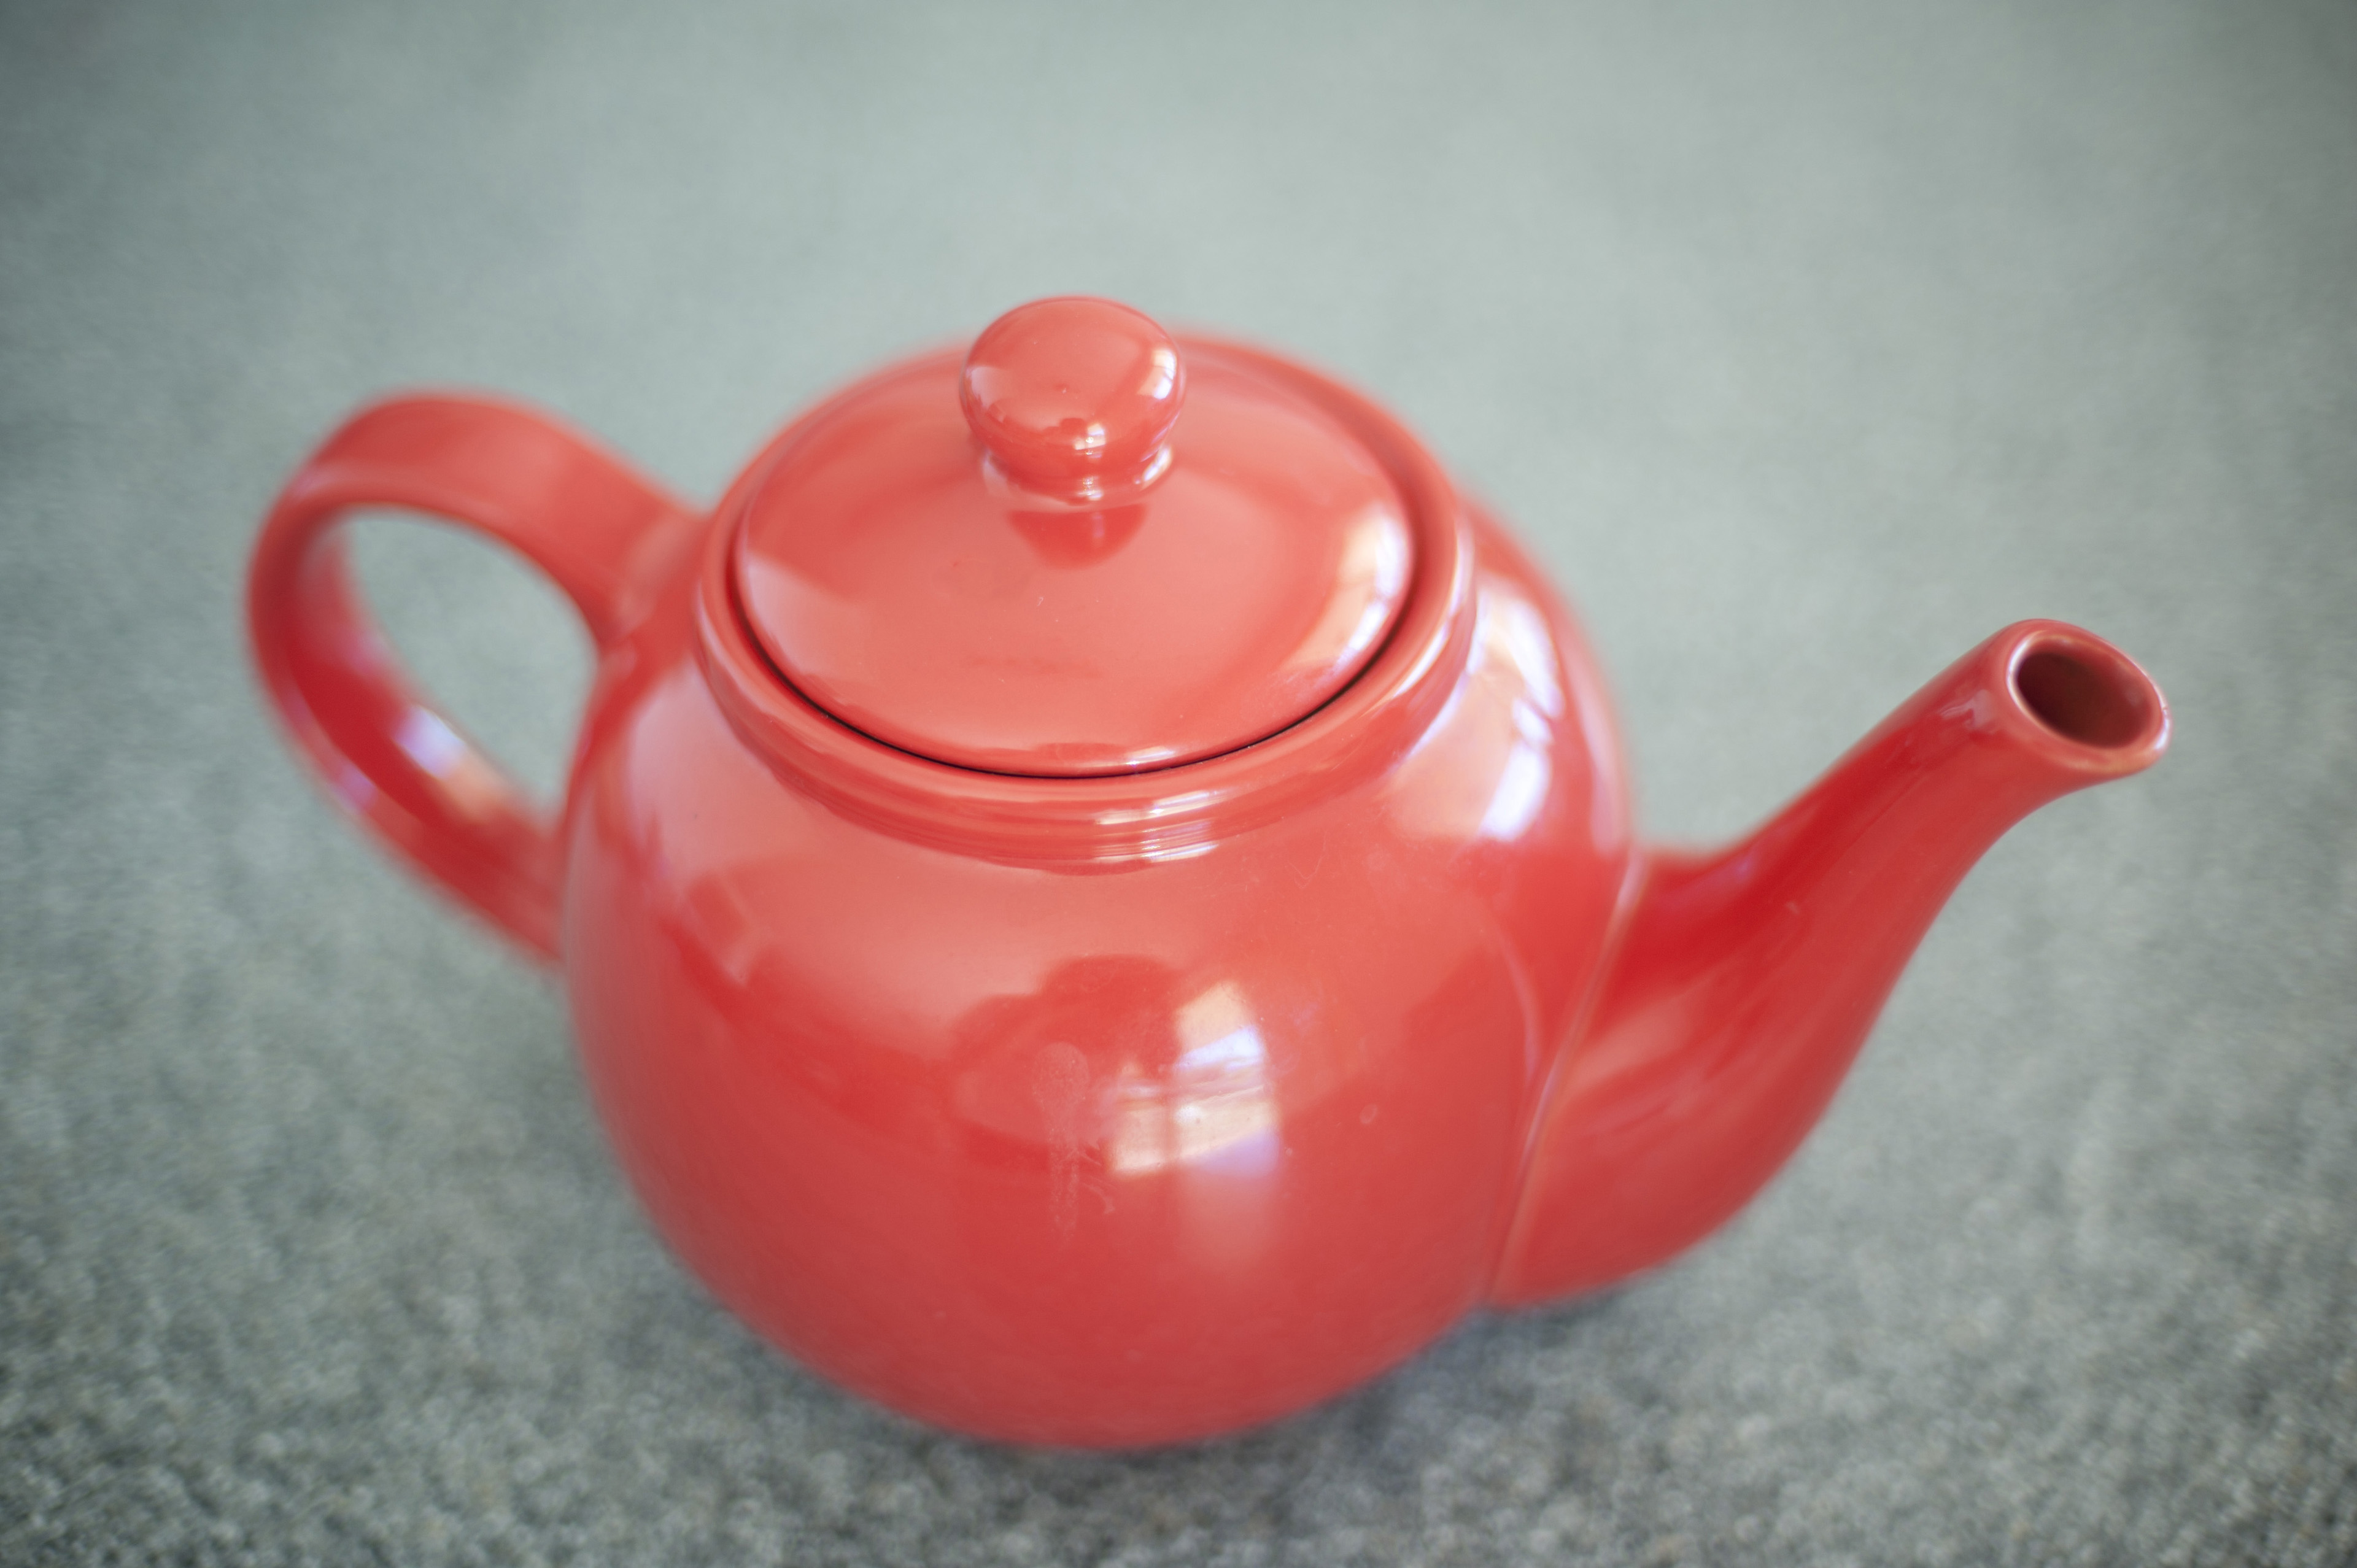 Still Life of Red Teapot on Counter Top as seen from Above